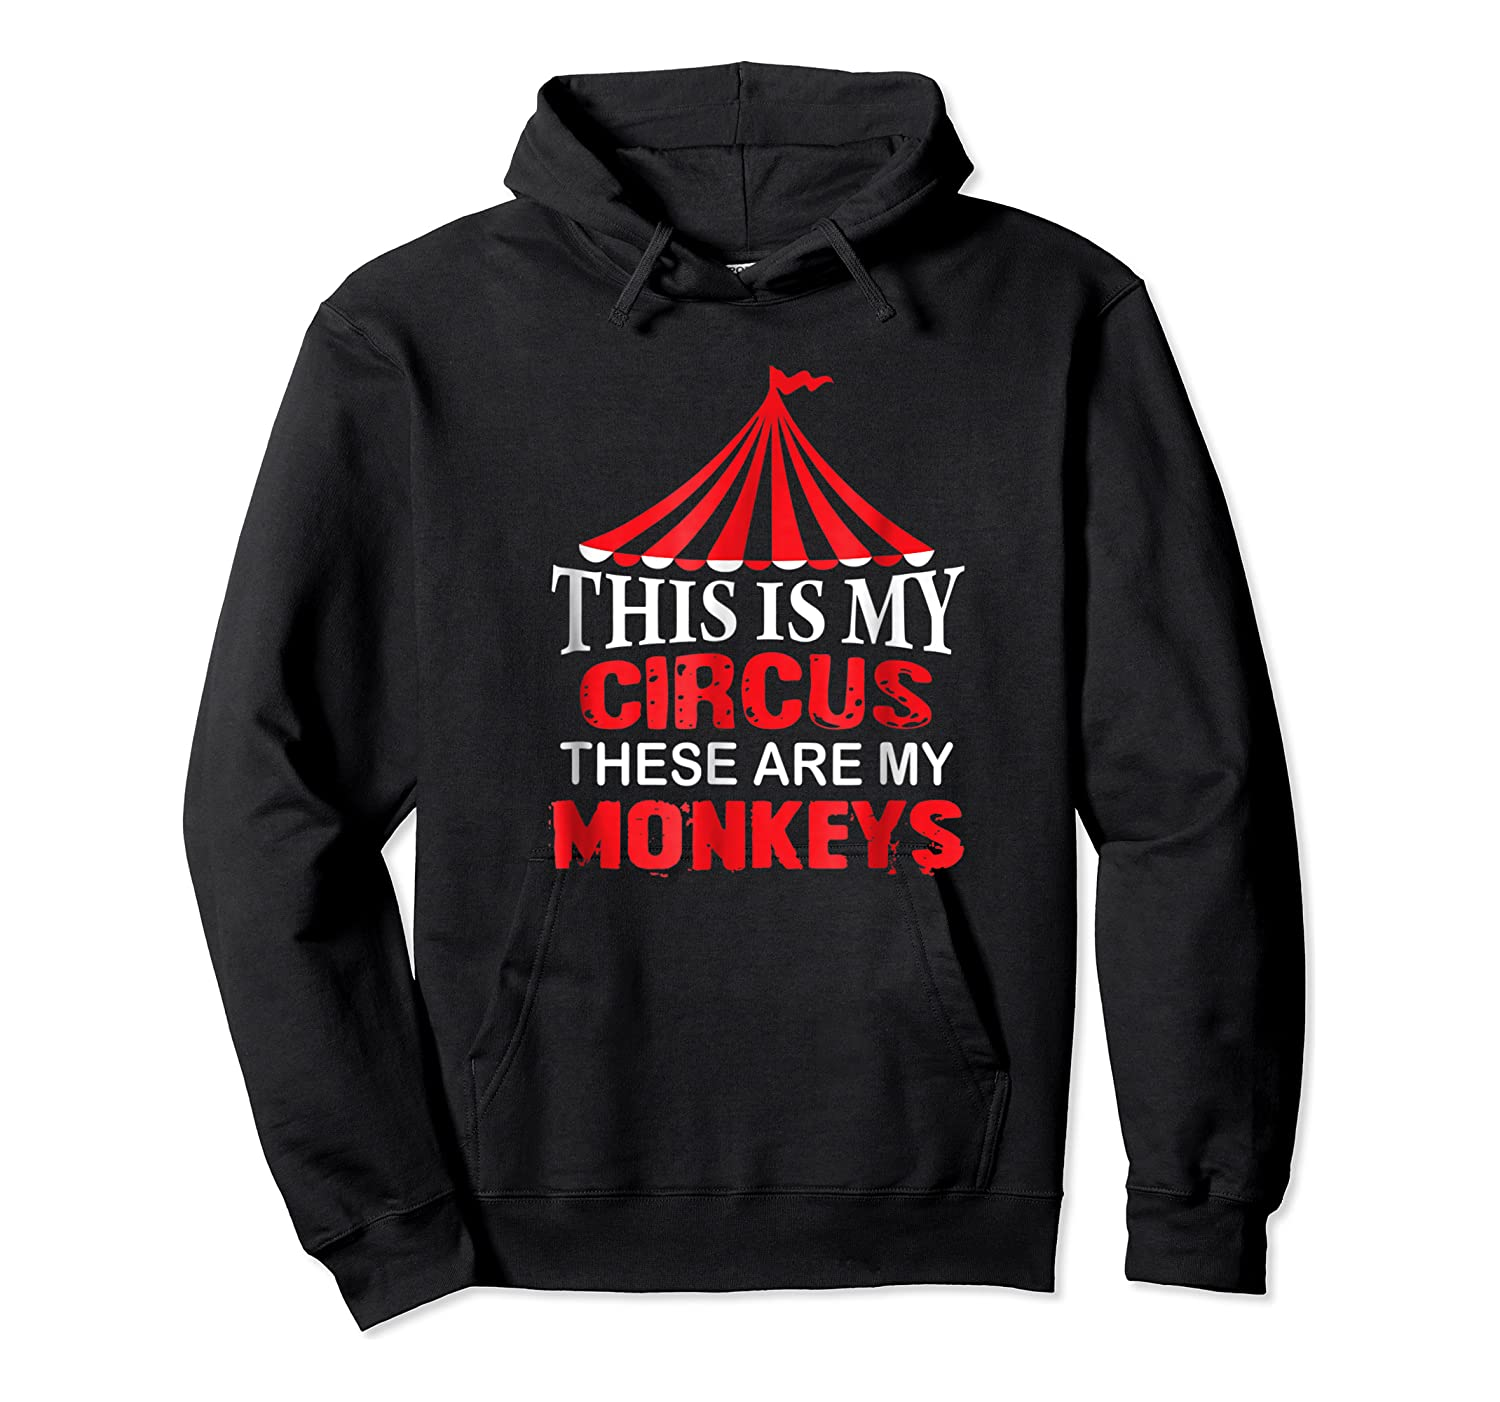 This Is My Circus These Are My Monkeys T Shirt, Family Fun Unisex Pullover Hoodie